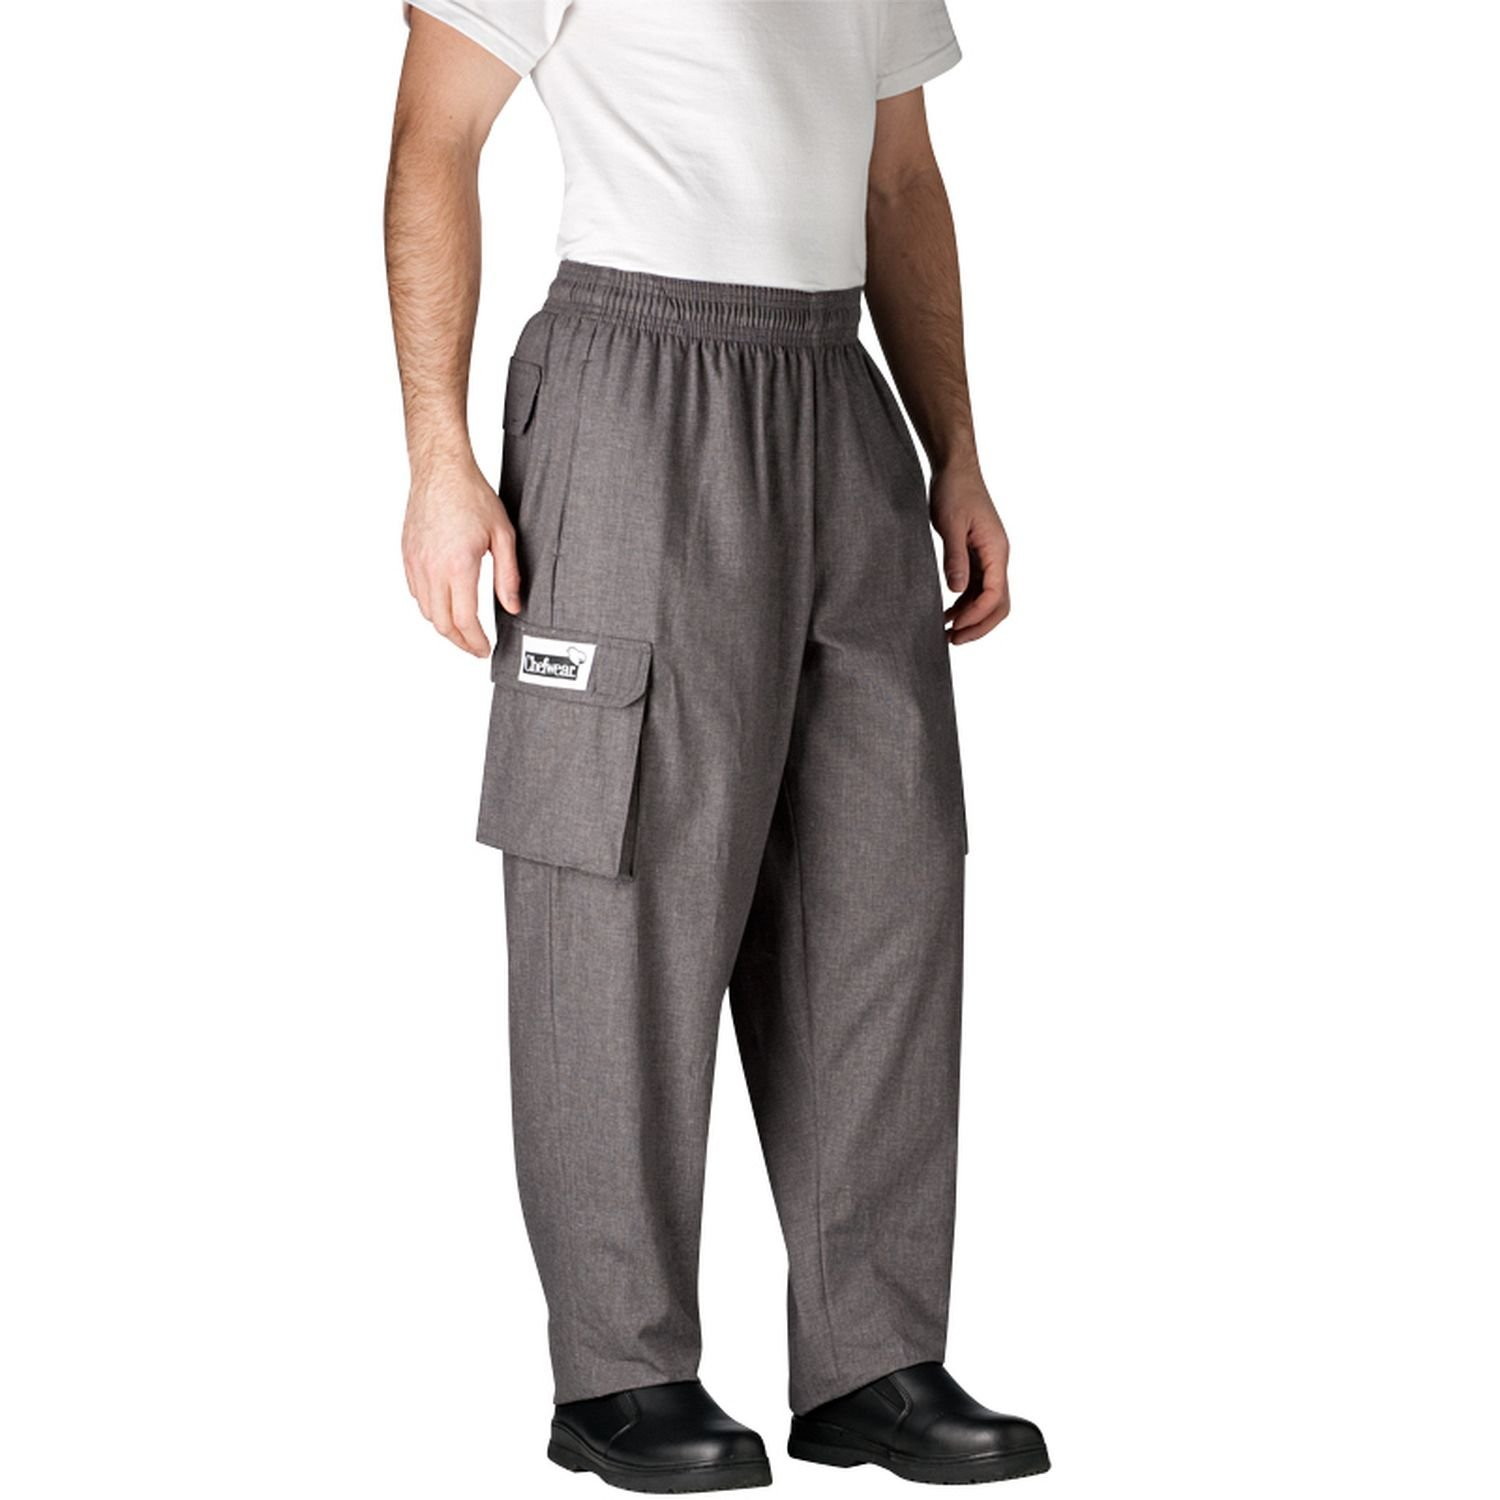 Chefwear Cargo Cotton Chef Pants Charcoal 5XL by Chefwear